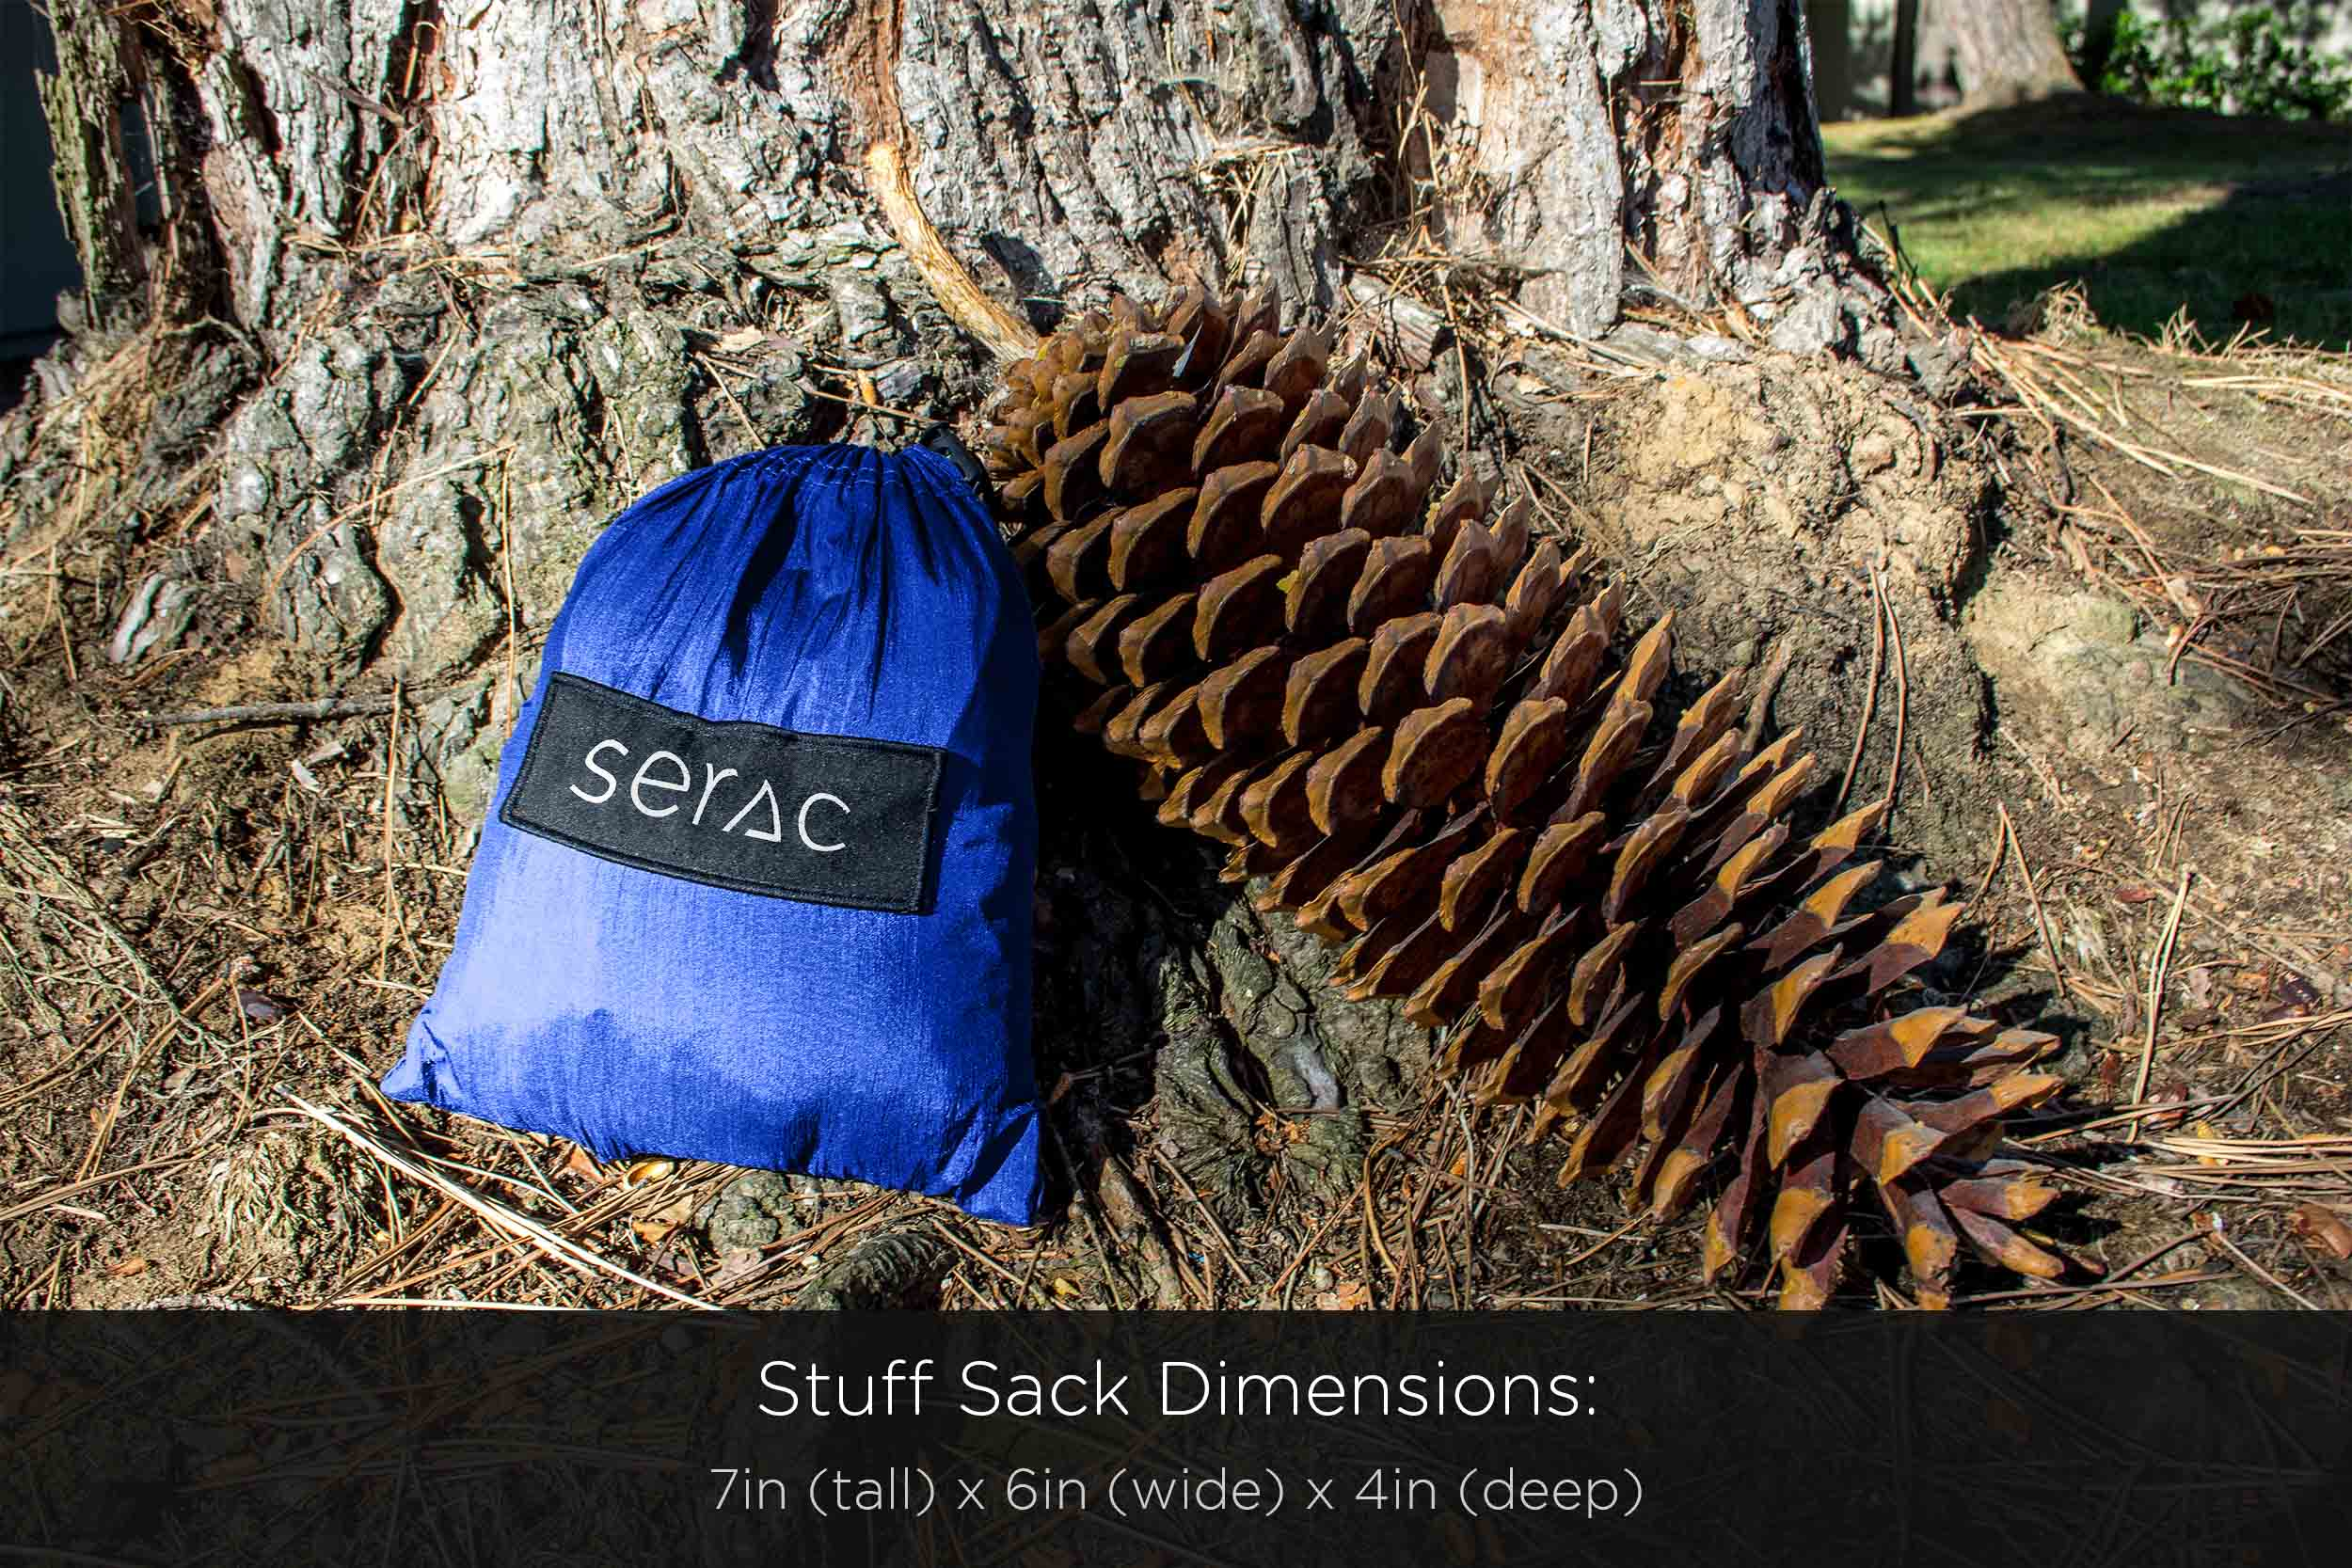 serac camping hammock stuffs into an attached stuff sack as small as a really big pine cone